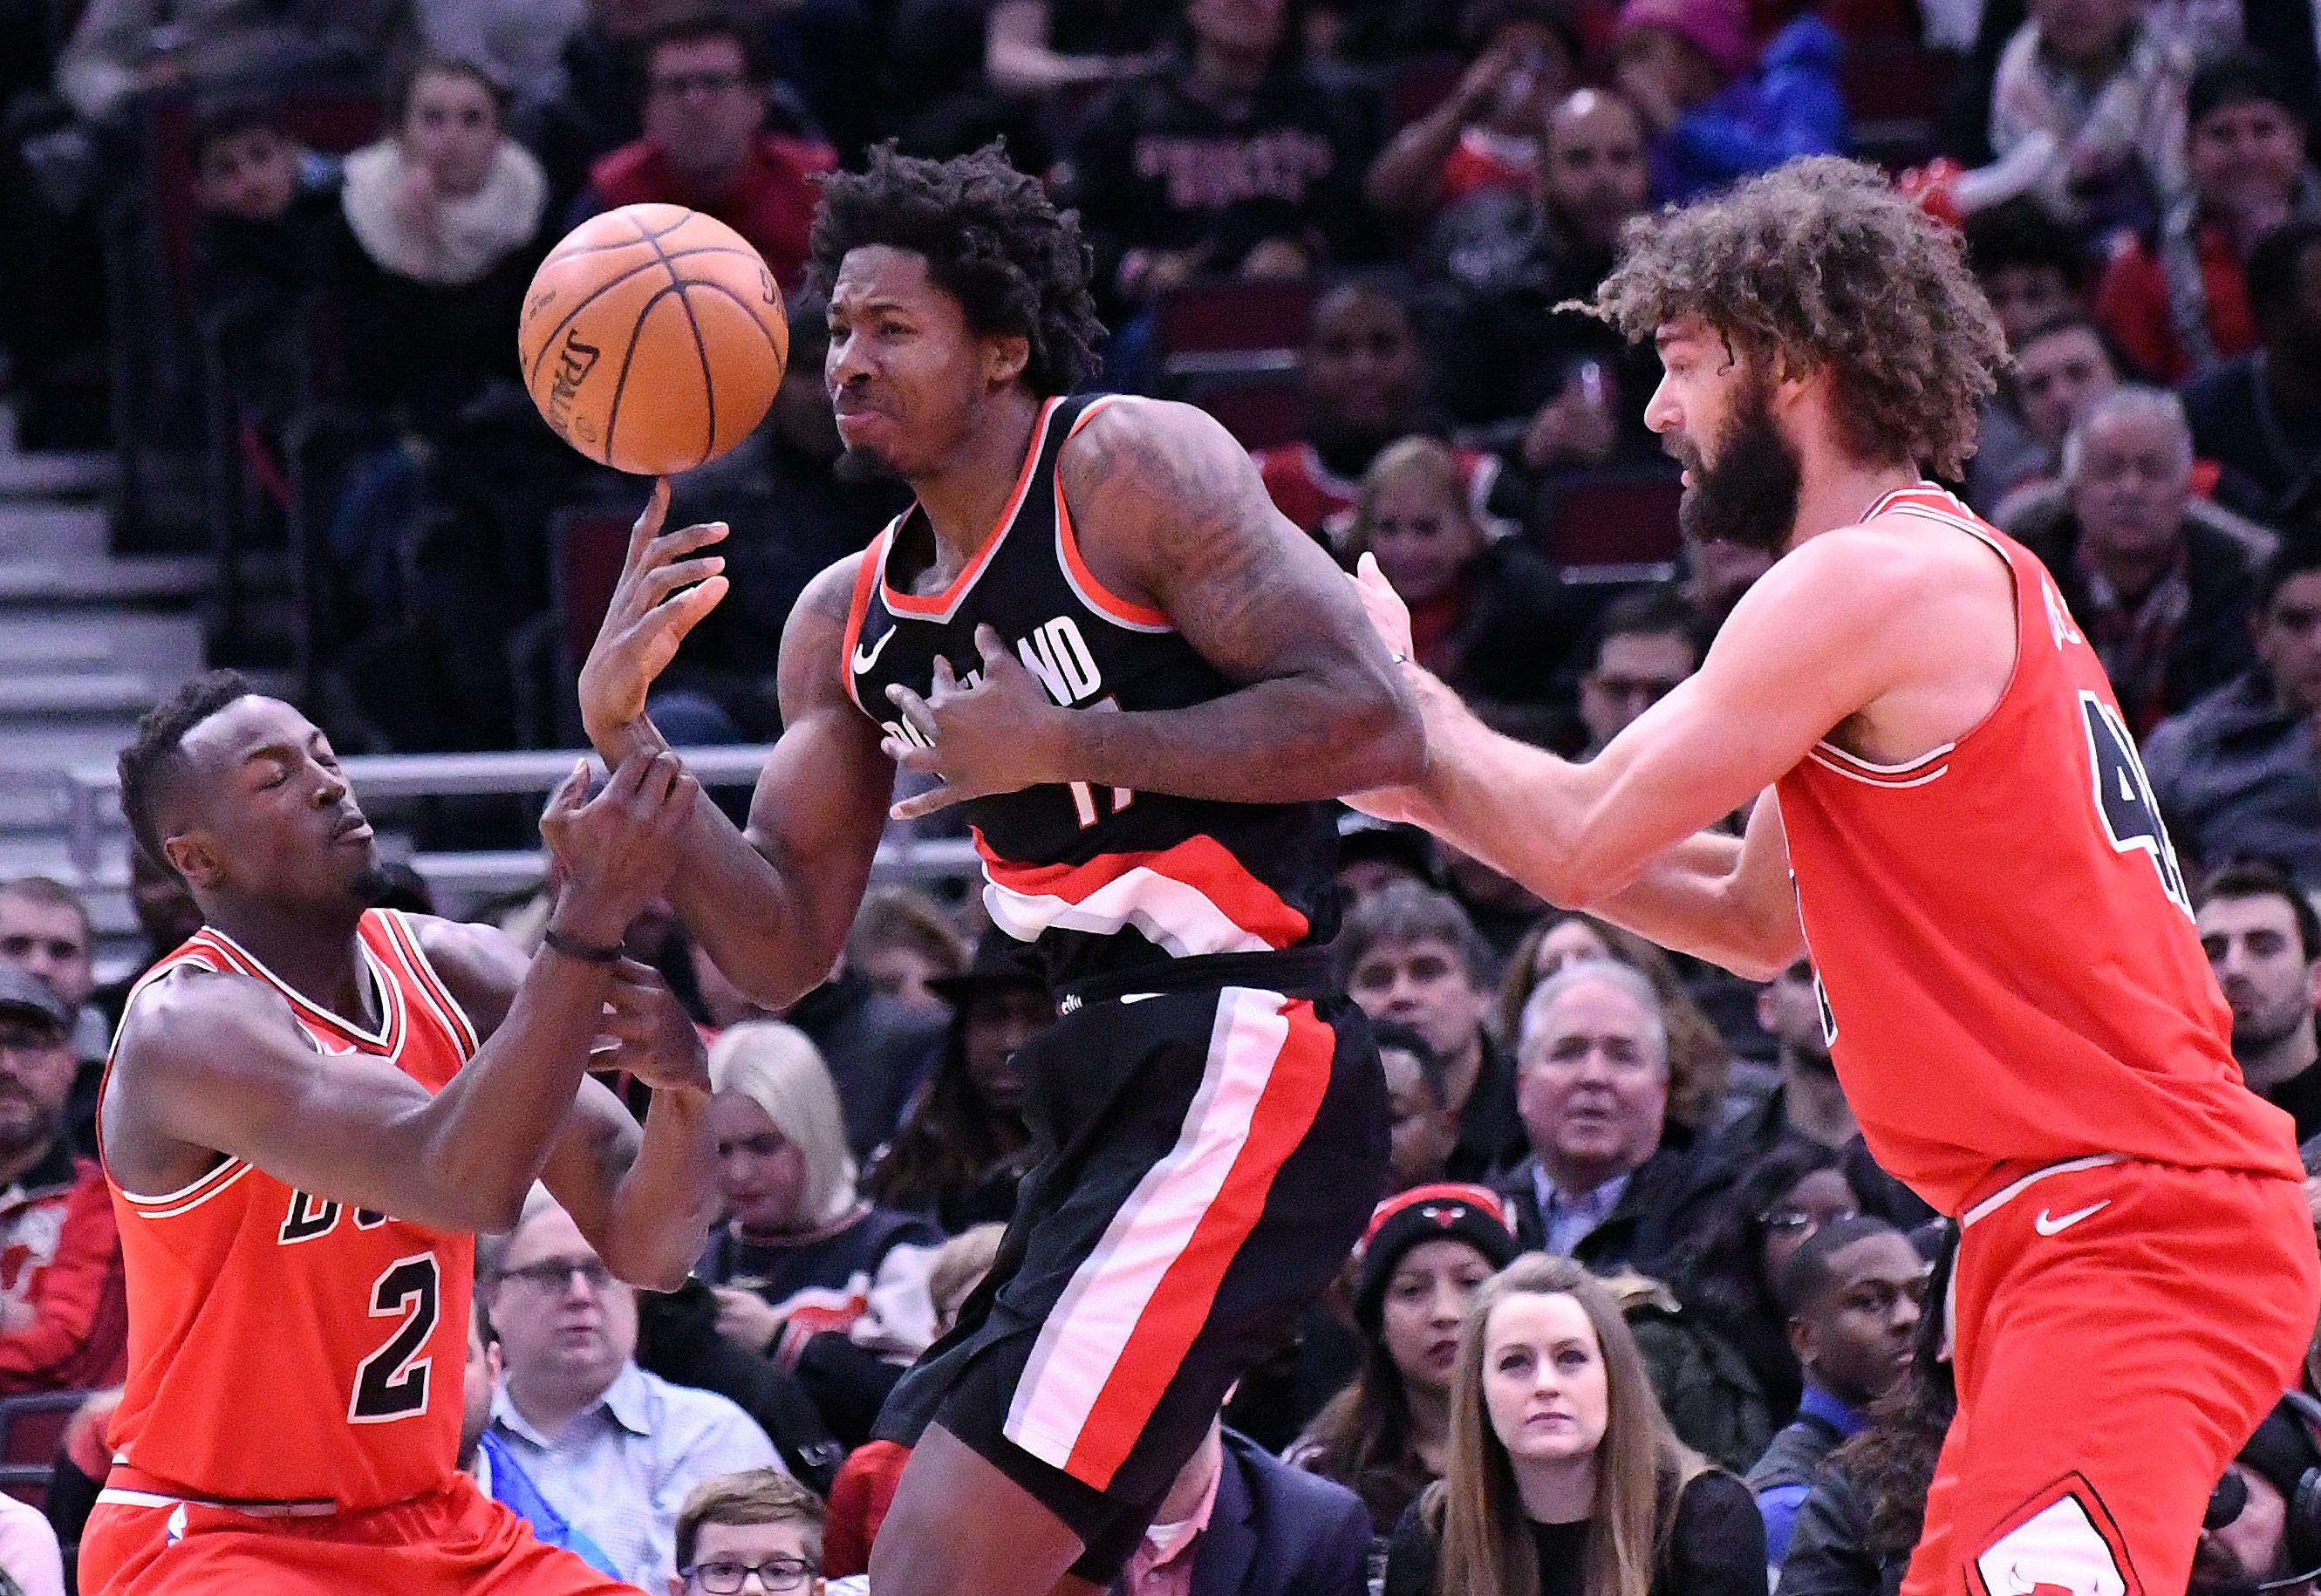 Portland Trail Blazers forward Ed Davis, center, Chicago Bulls guard Jerian Grant, left, and center Robin Lopez, right, go for a loose ball during the first half of an NBA basketball game, Monday, Jan. 1, 2018, in Chicago. (AP Photo/David Banks)